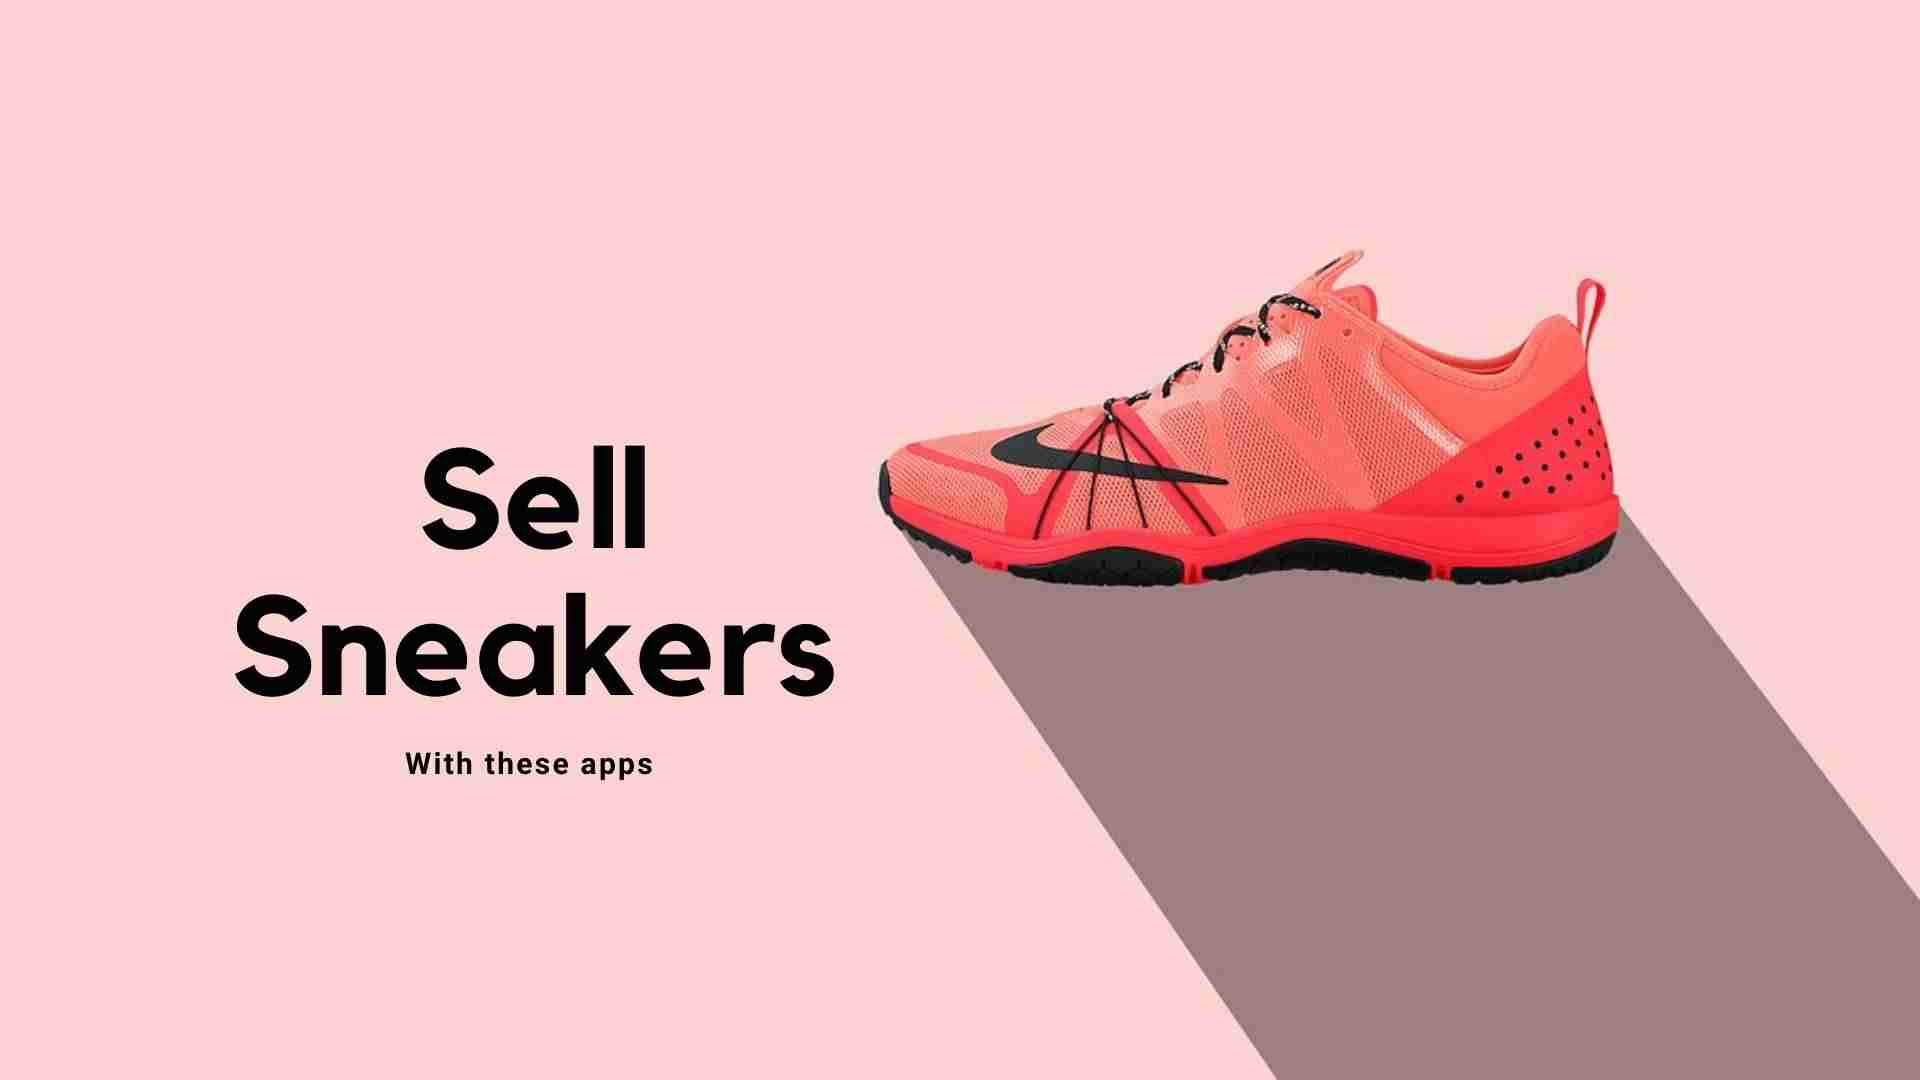 6 Best apps to sell sneakers and earn instant cash